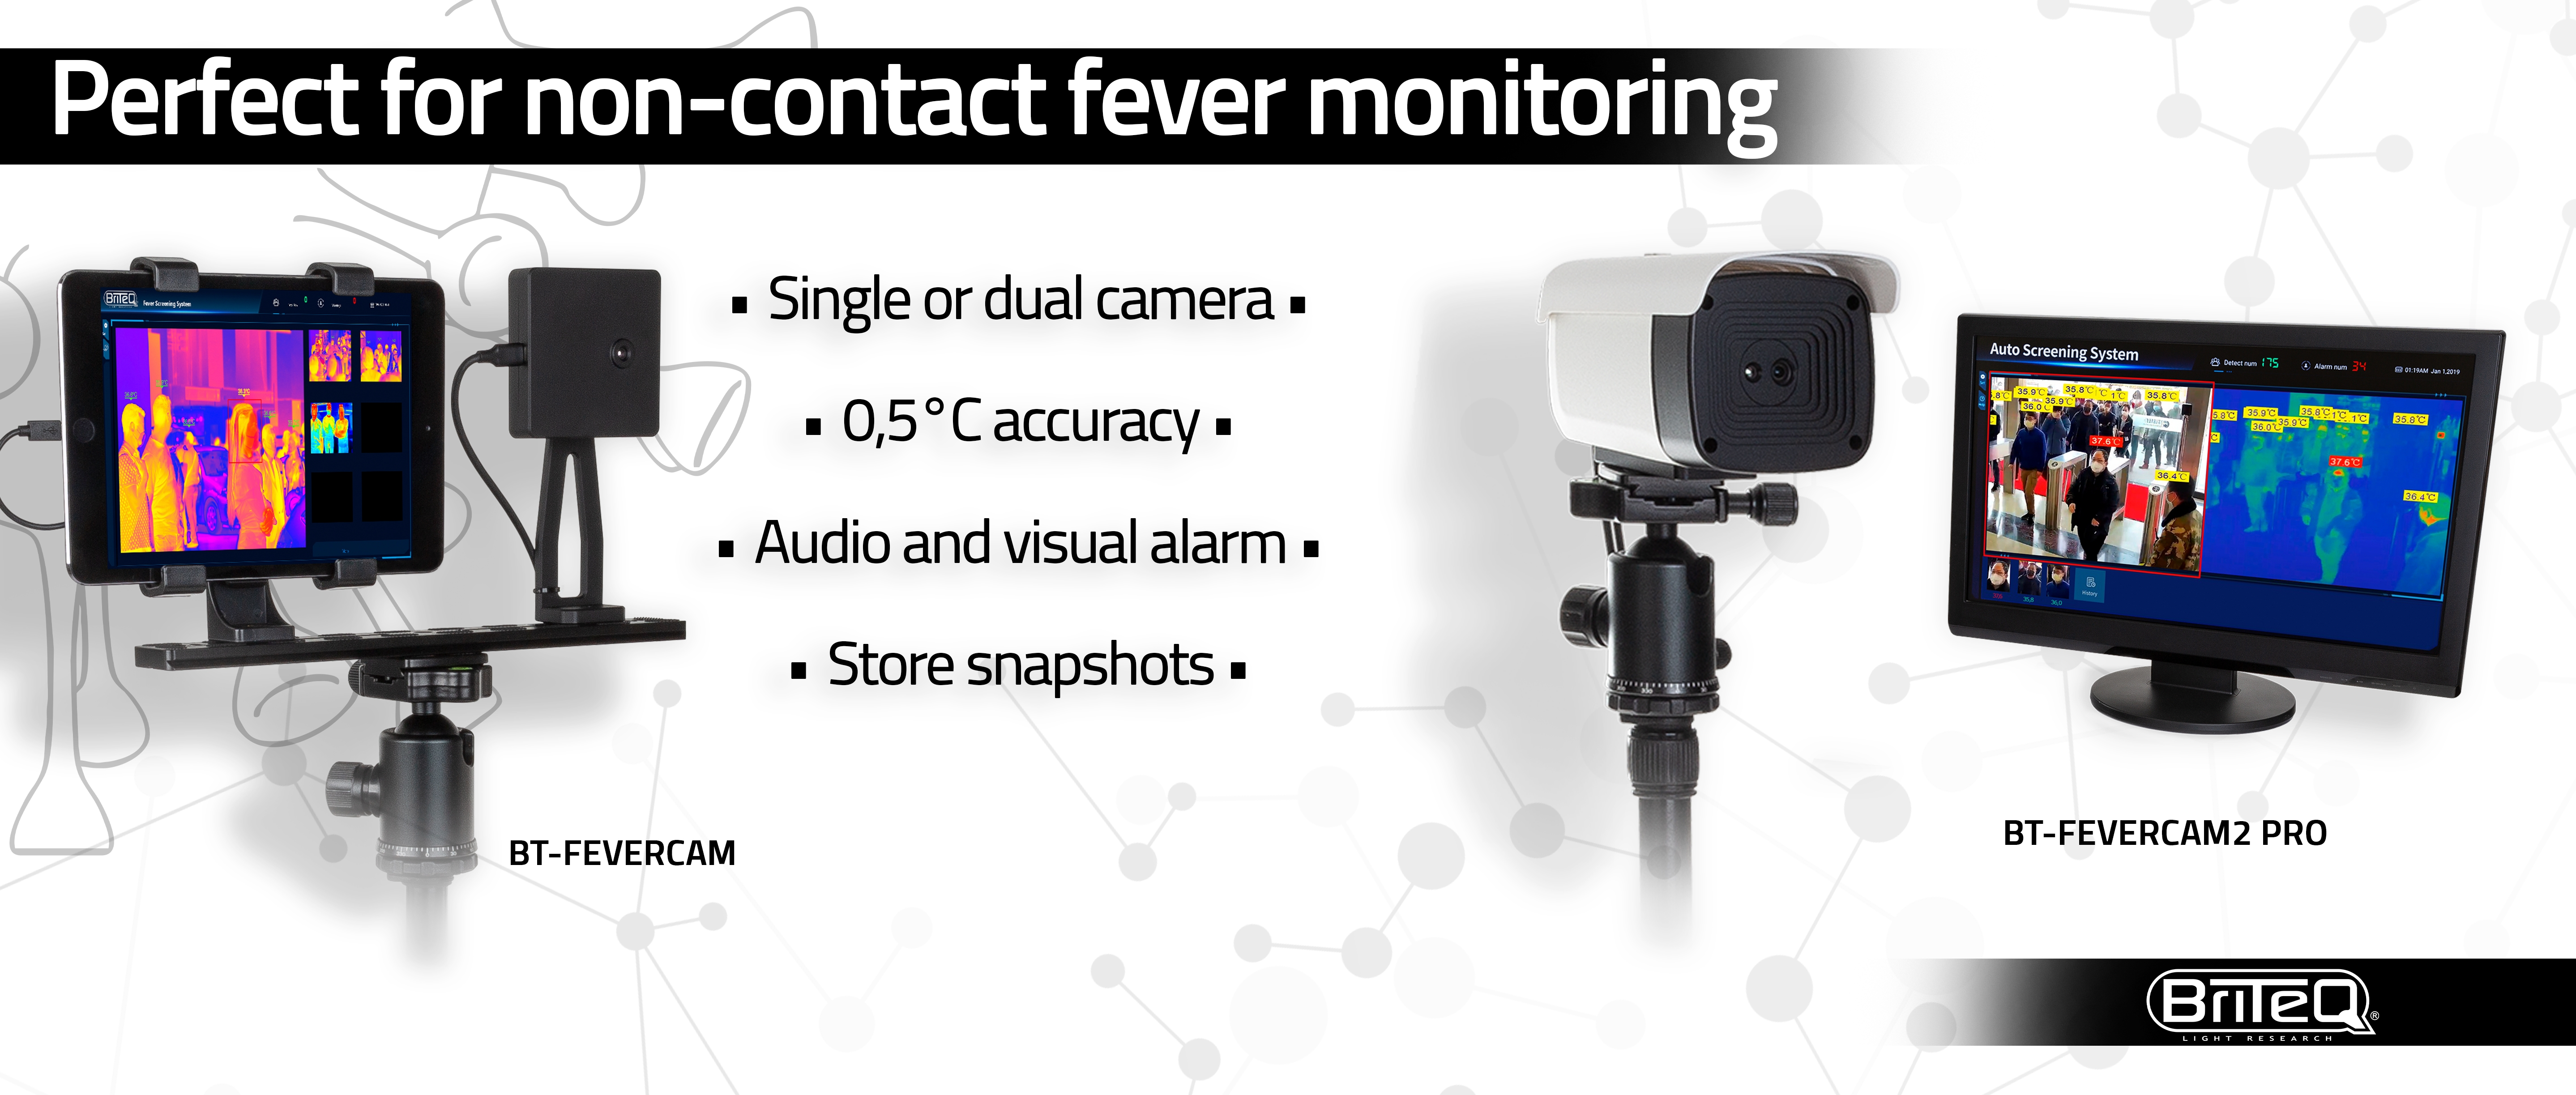 BRITEQ Thermographic fever detection cameras